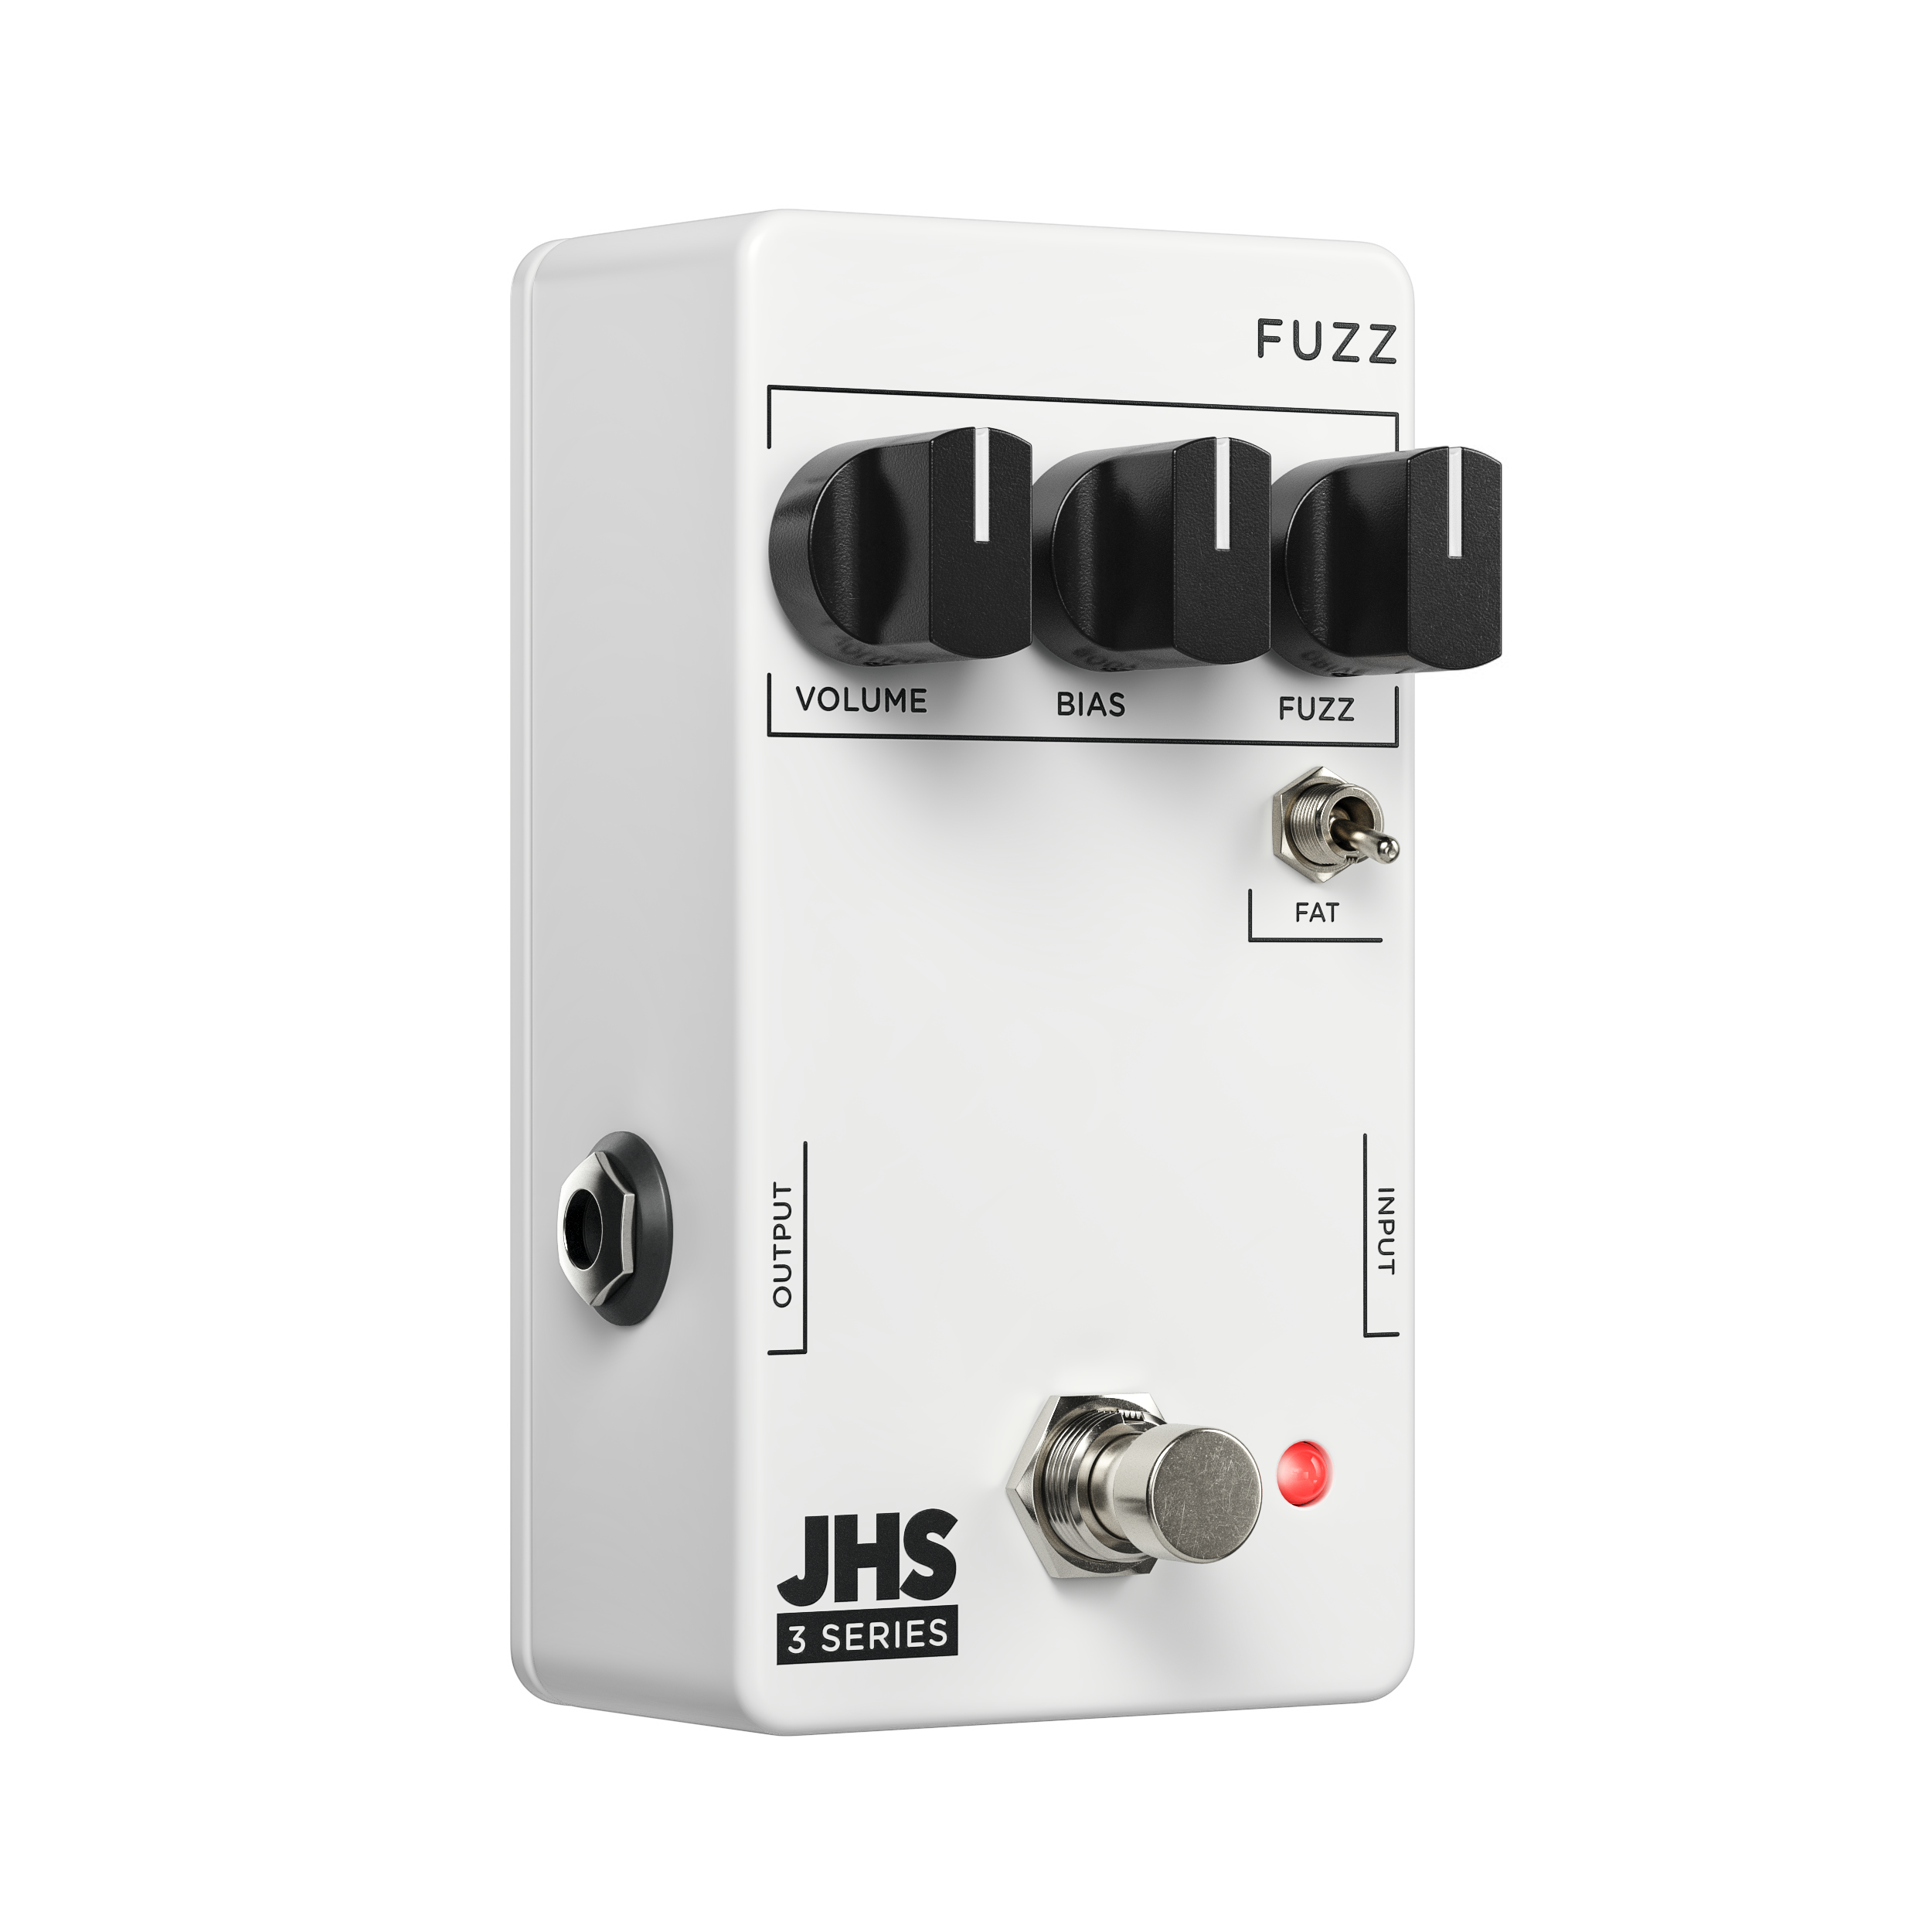 JHS-Pedals-3-Series-Fuzz-angle